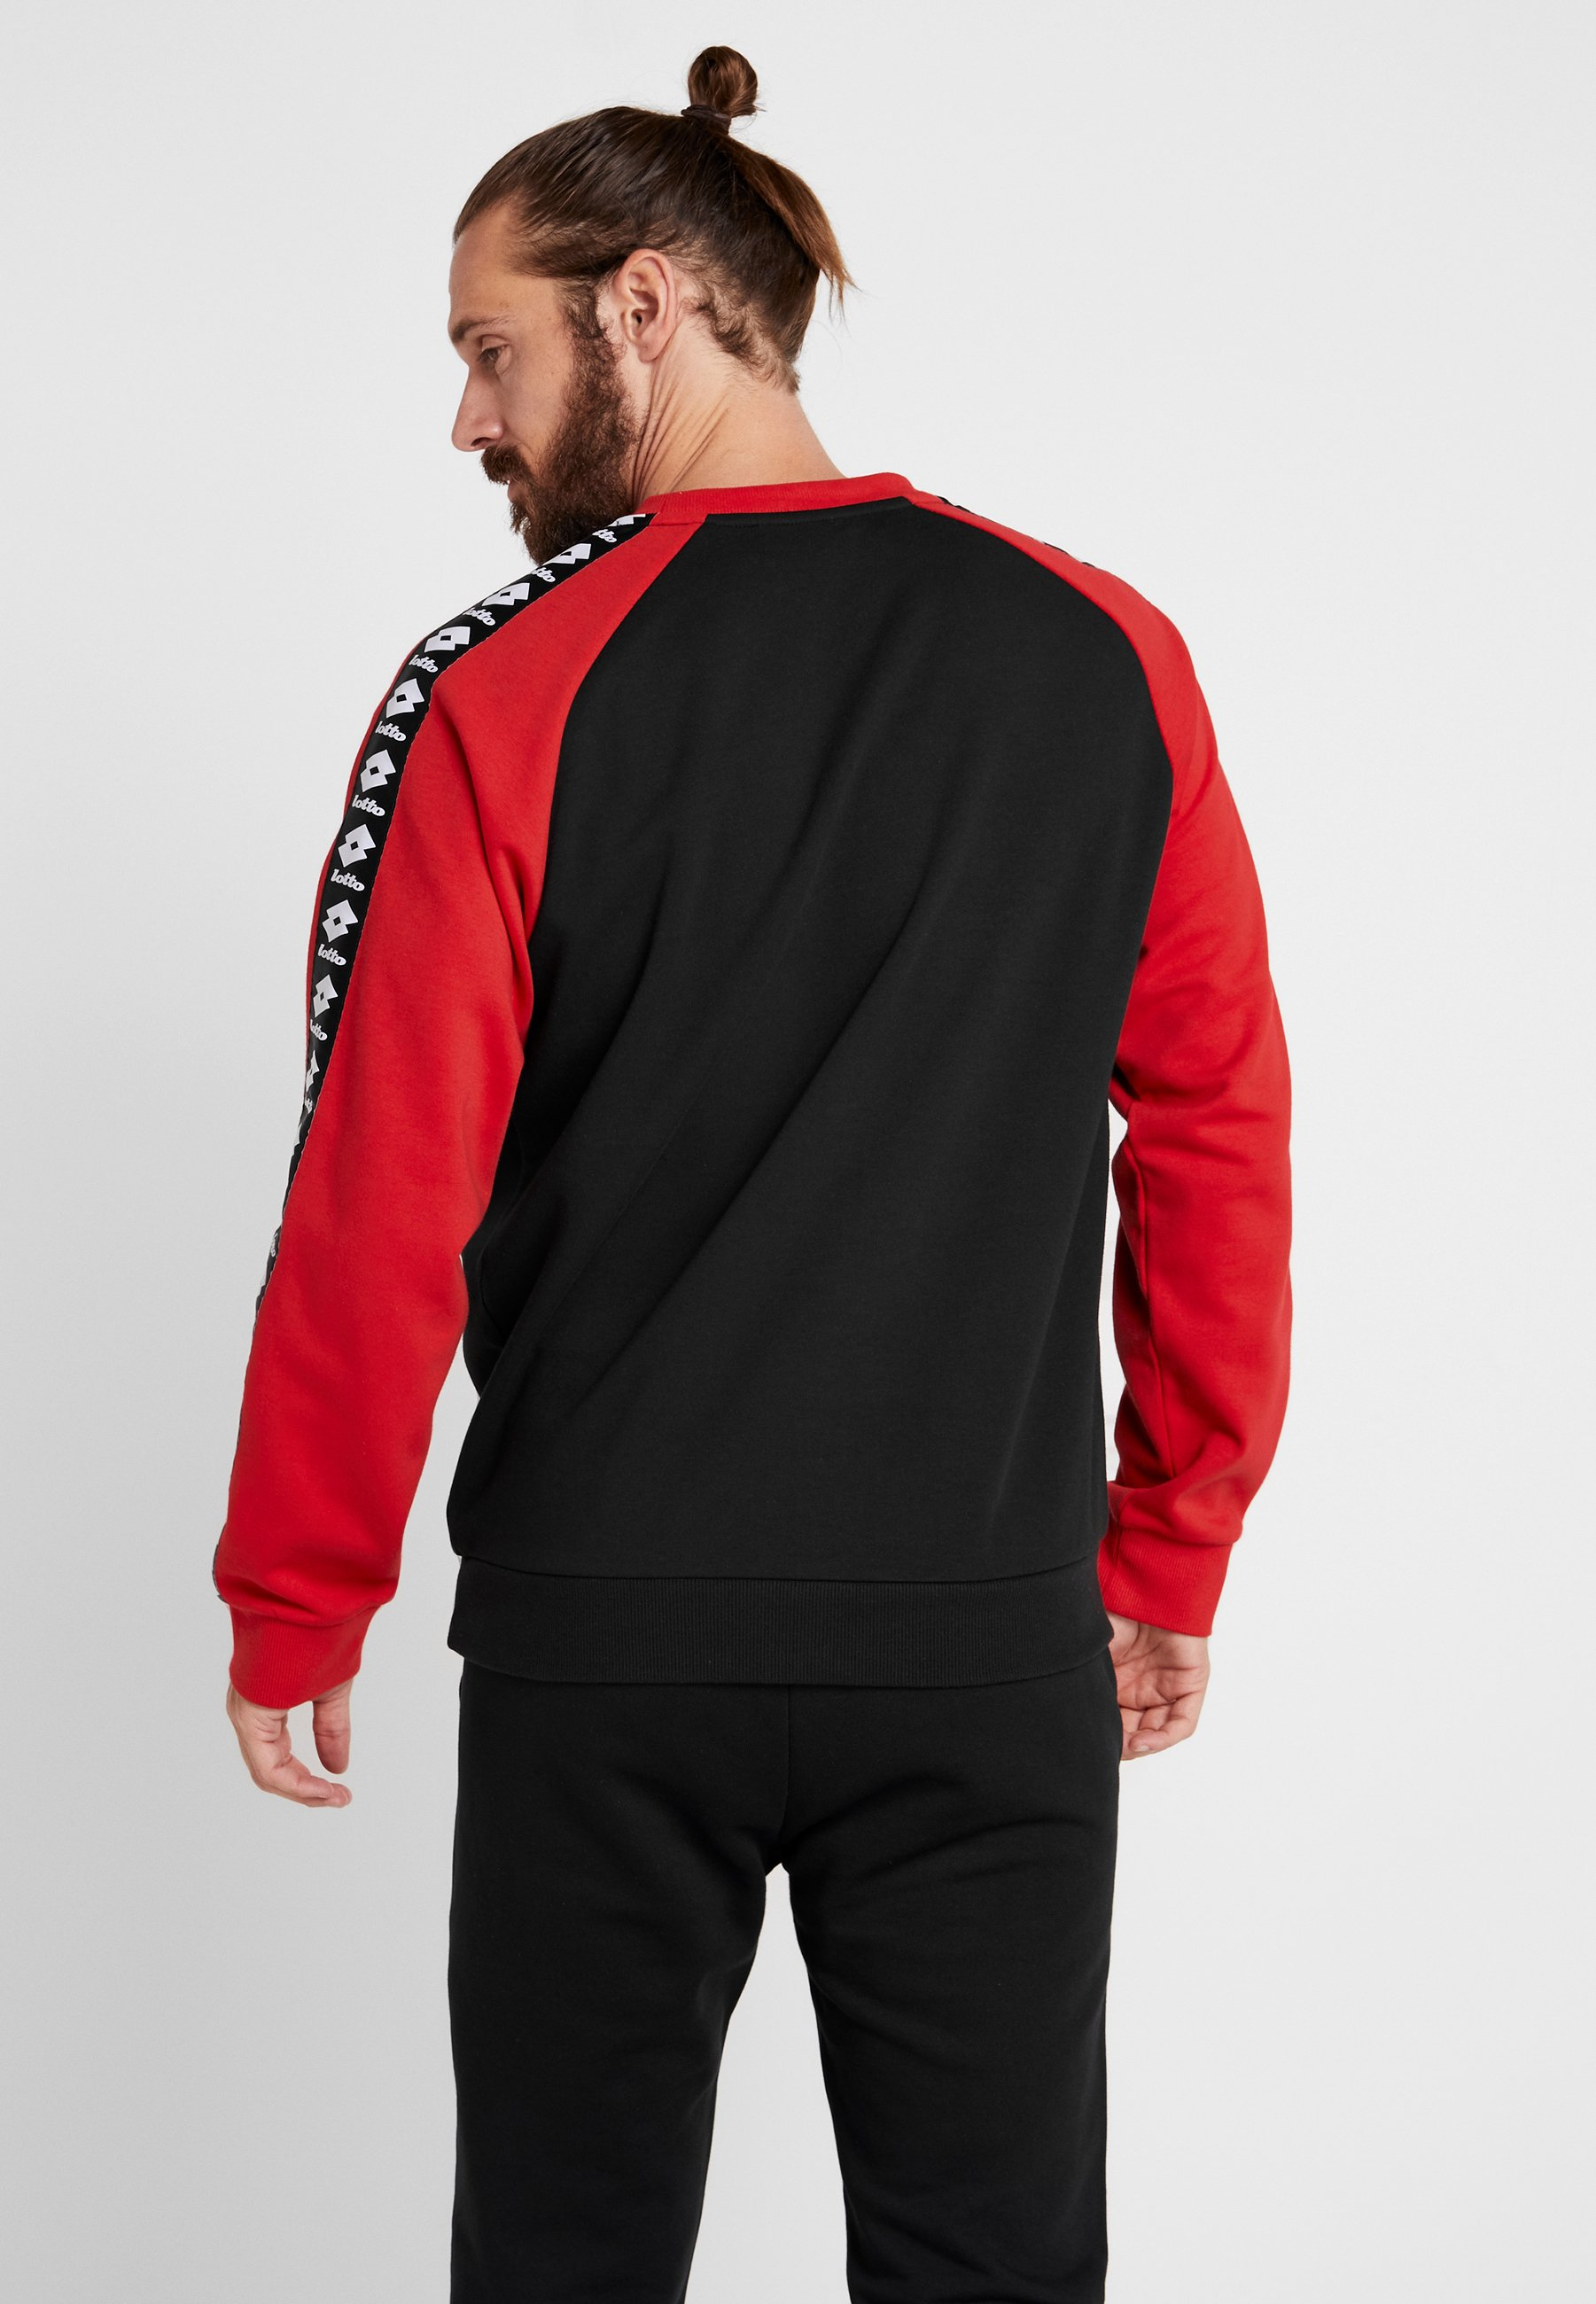 flame AthleticaSweatshirt Red All Lotto Black UzGVqSMp